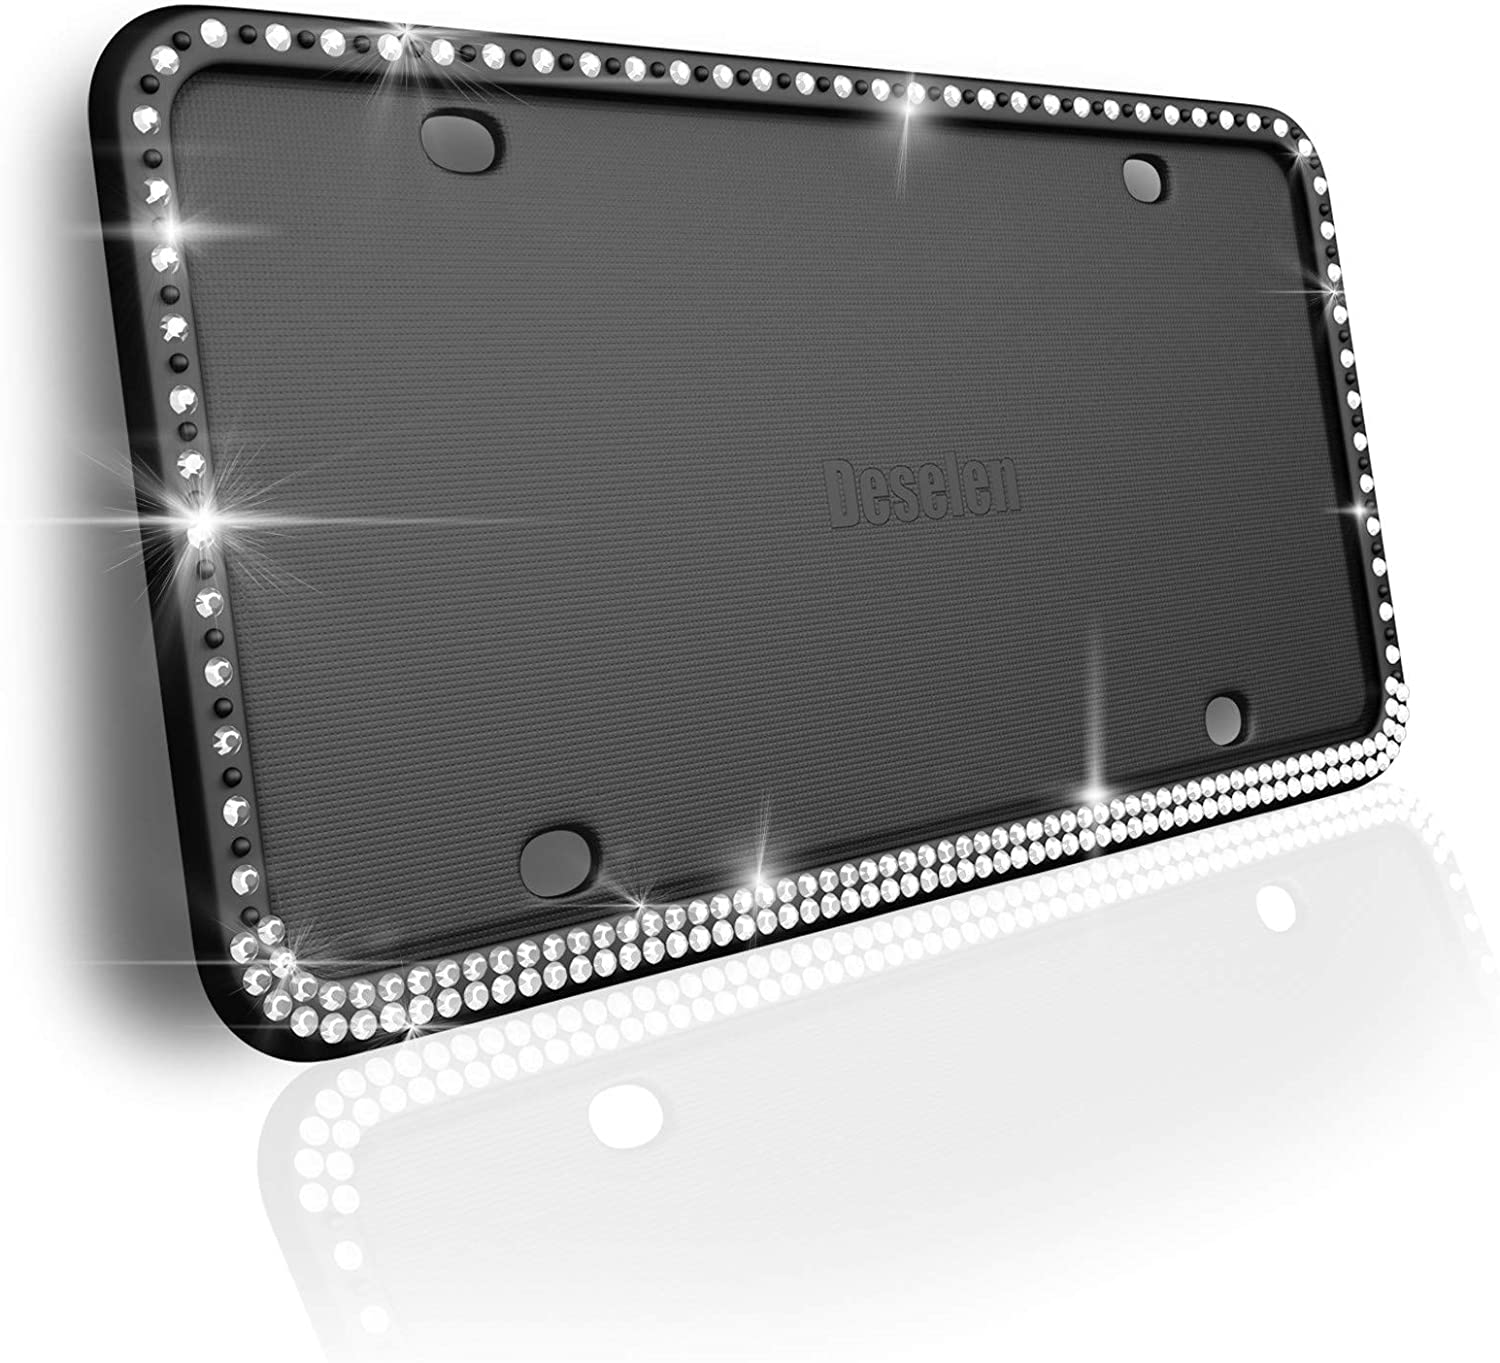 Deselen Sparkling Silicone License Plate Frame, Handcrafted Diamond Styling, Black, 1Pack